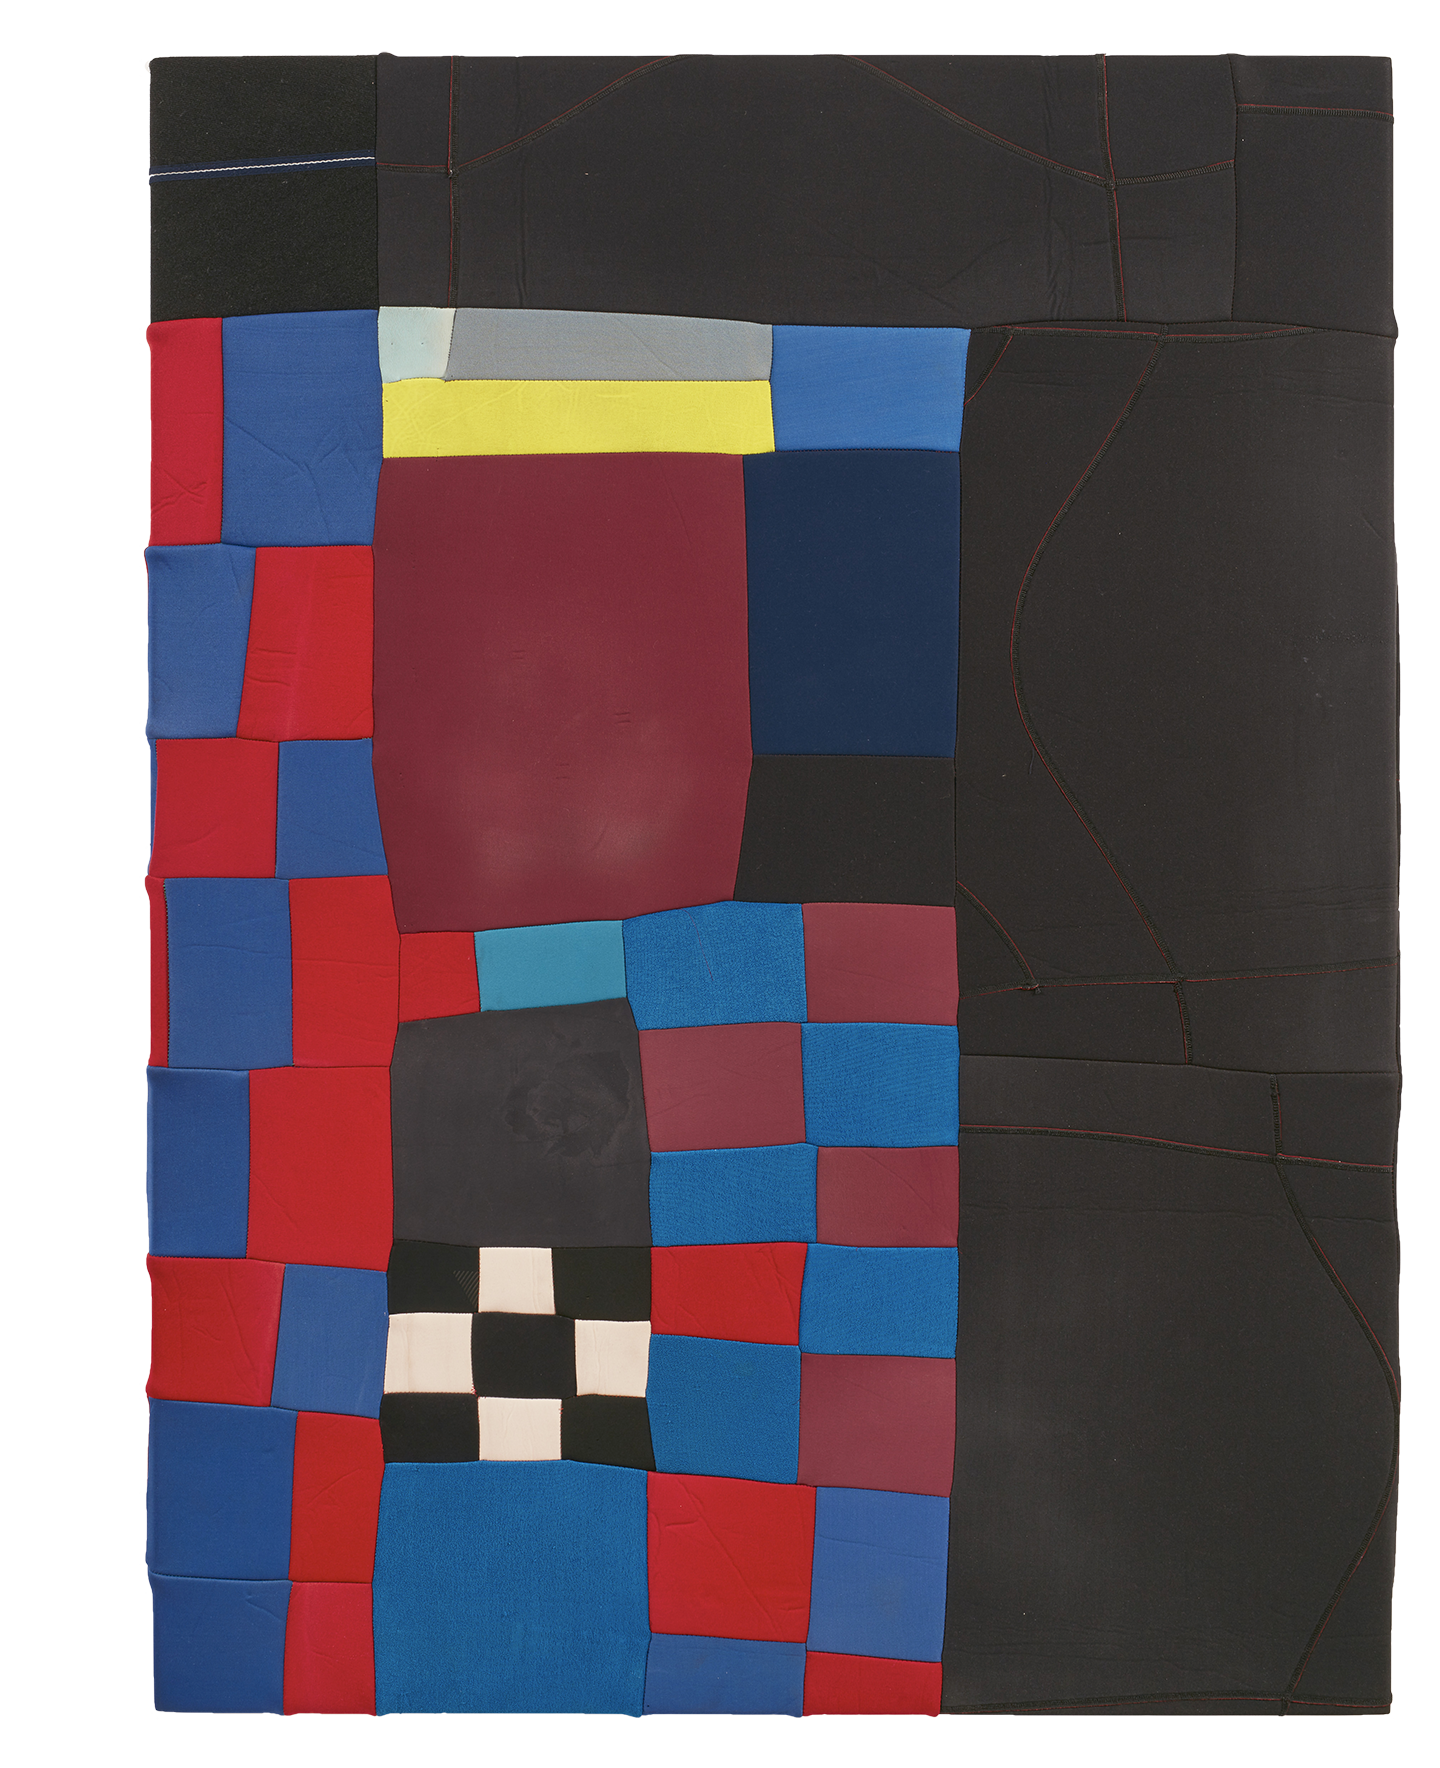 King of the Bowl with Francis Harsing  2019, stretched found neoprene, 142 x 106 cm